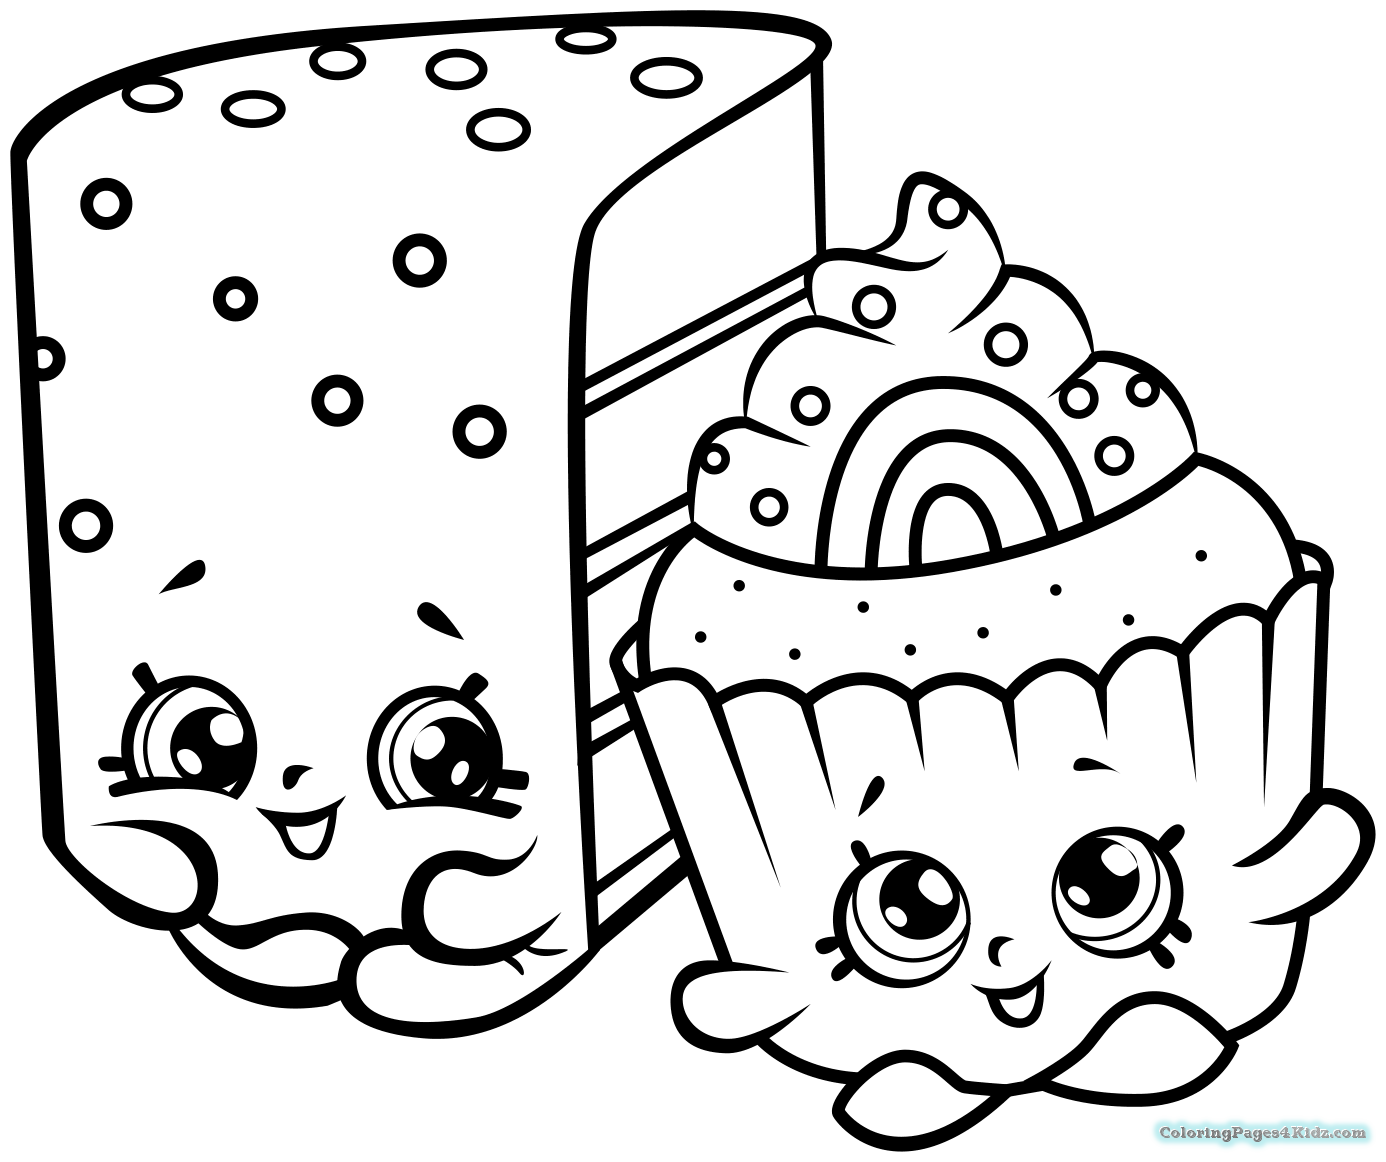 Shopkins Coloring Pages Season Limited Edition 7 Coloring Pages For Shopkins Para Colorear Dibujos Para Colorear Sencillos Shopkins Dibujos